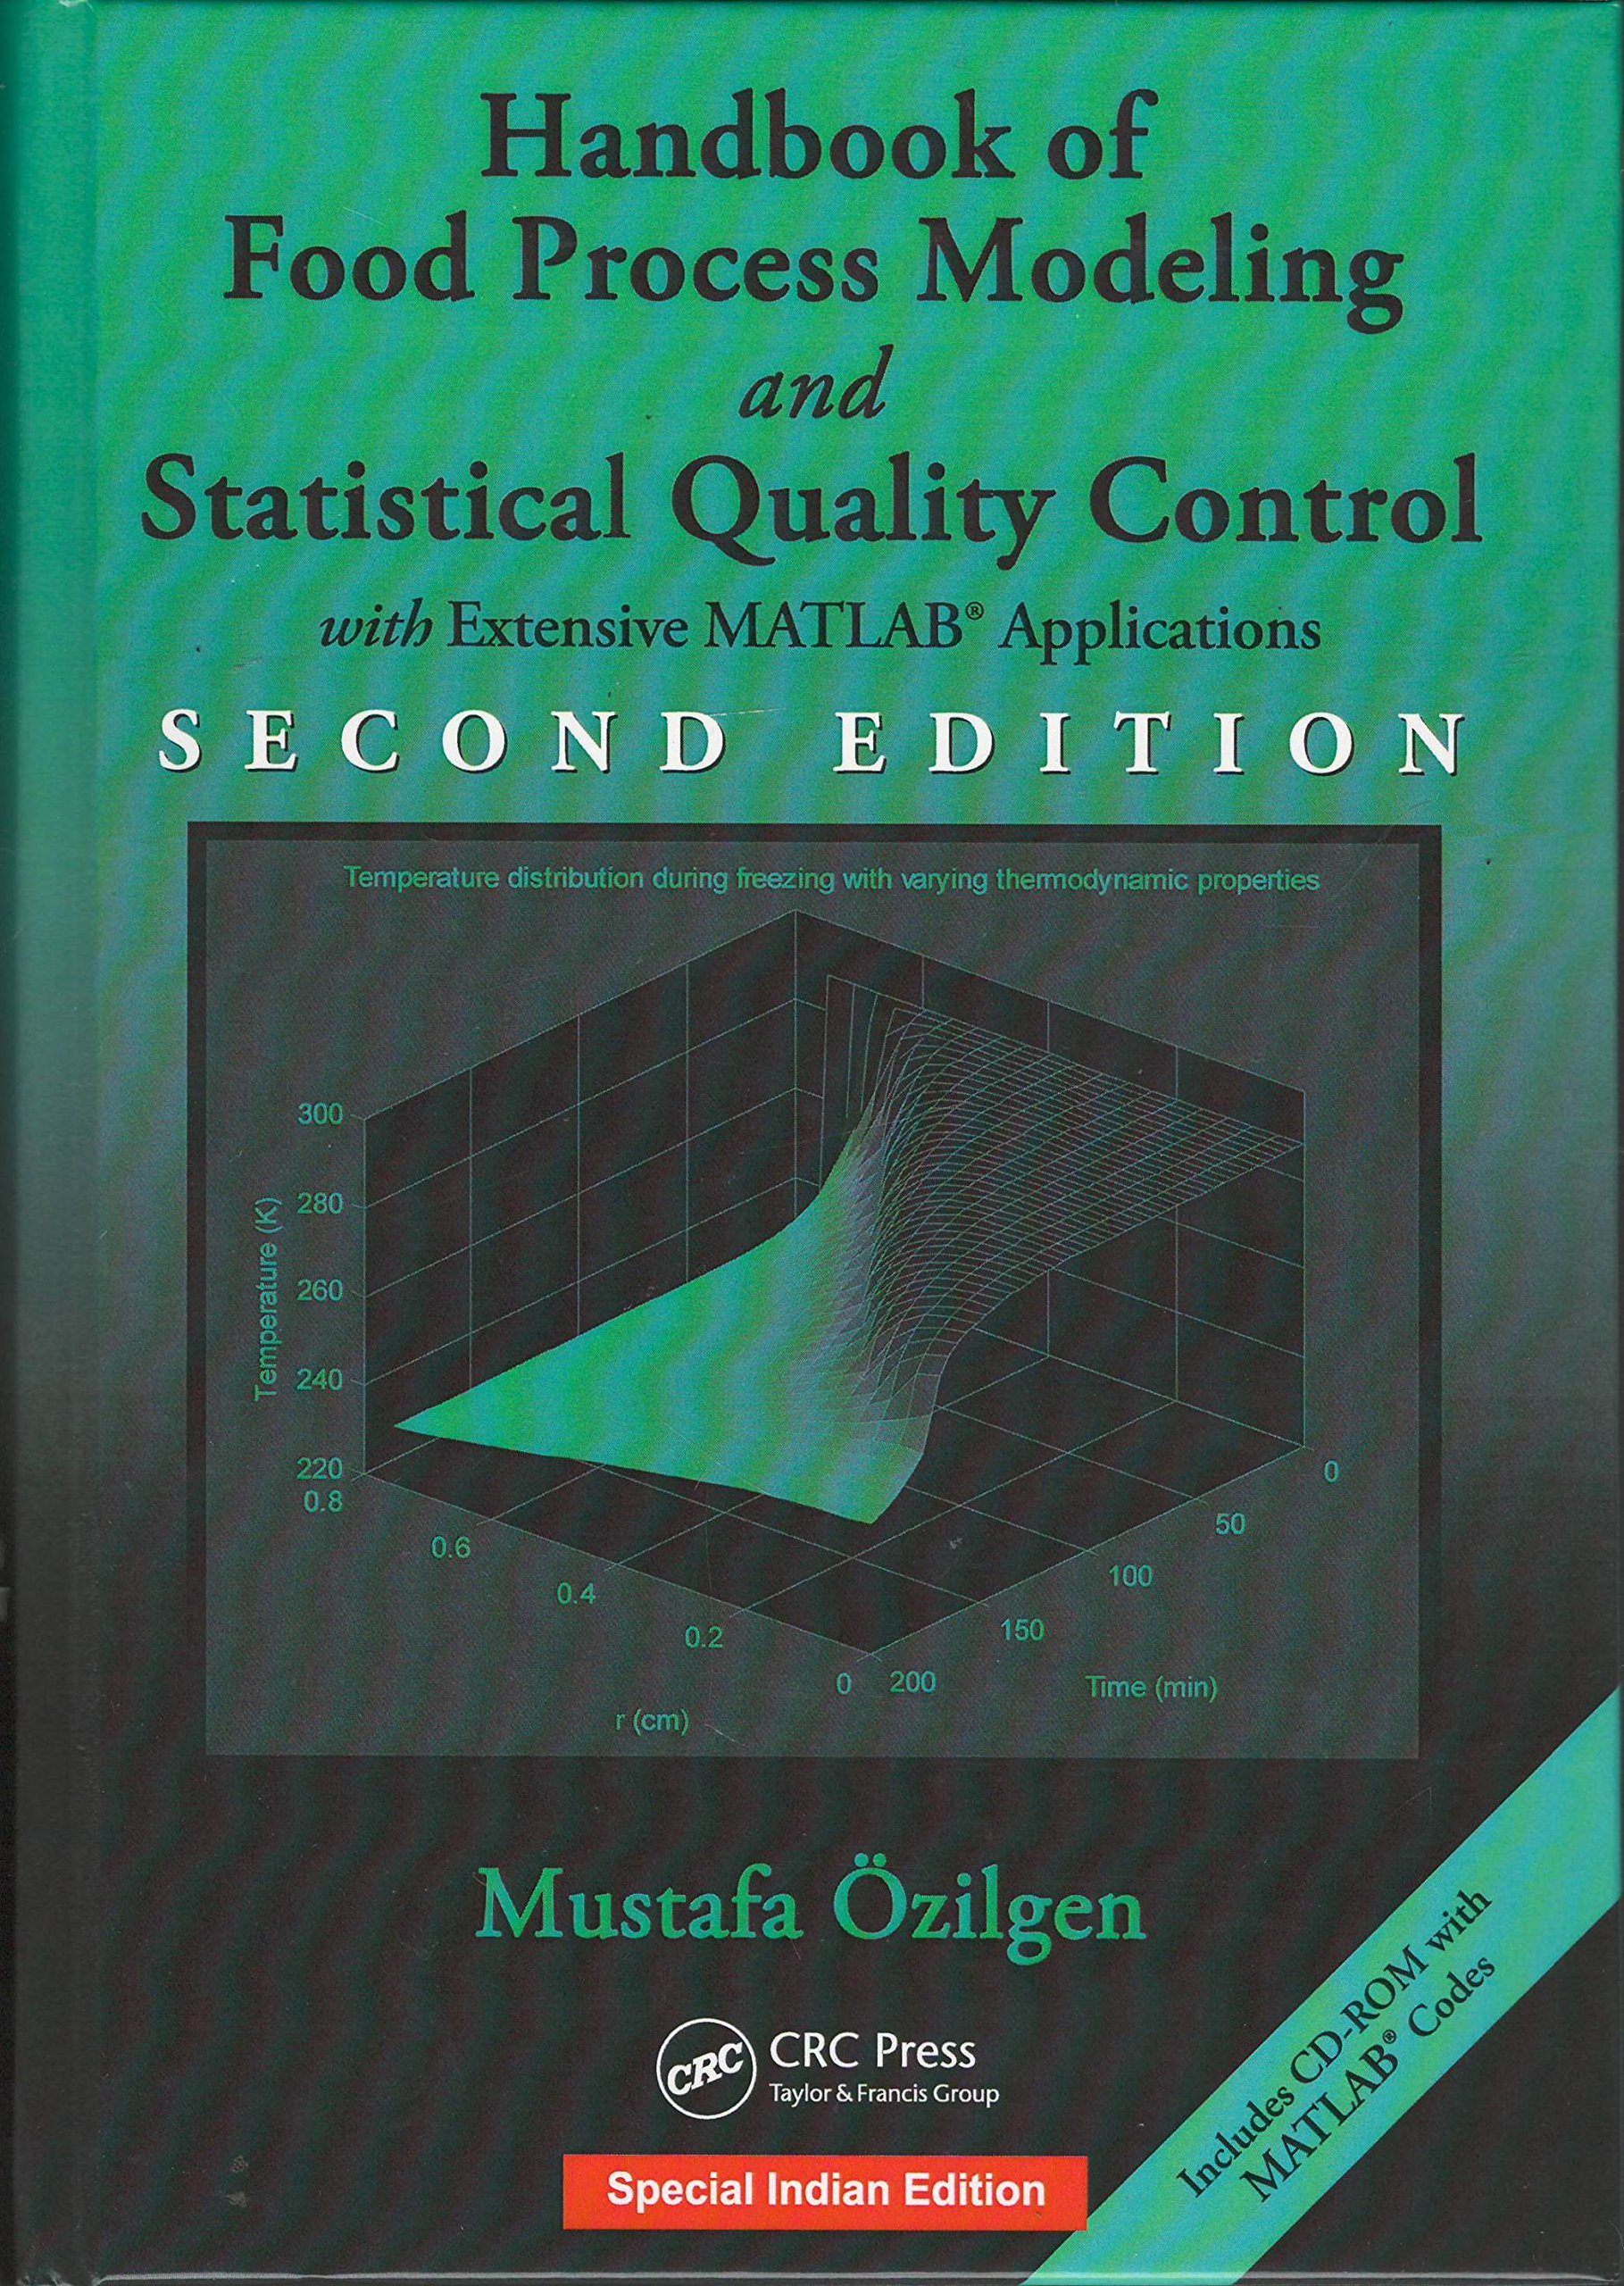 Handbook of Food Process Modeling and Statistical Quality